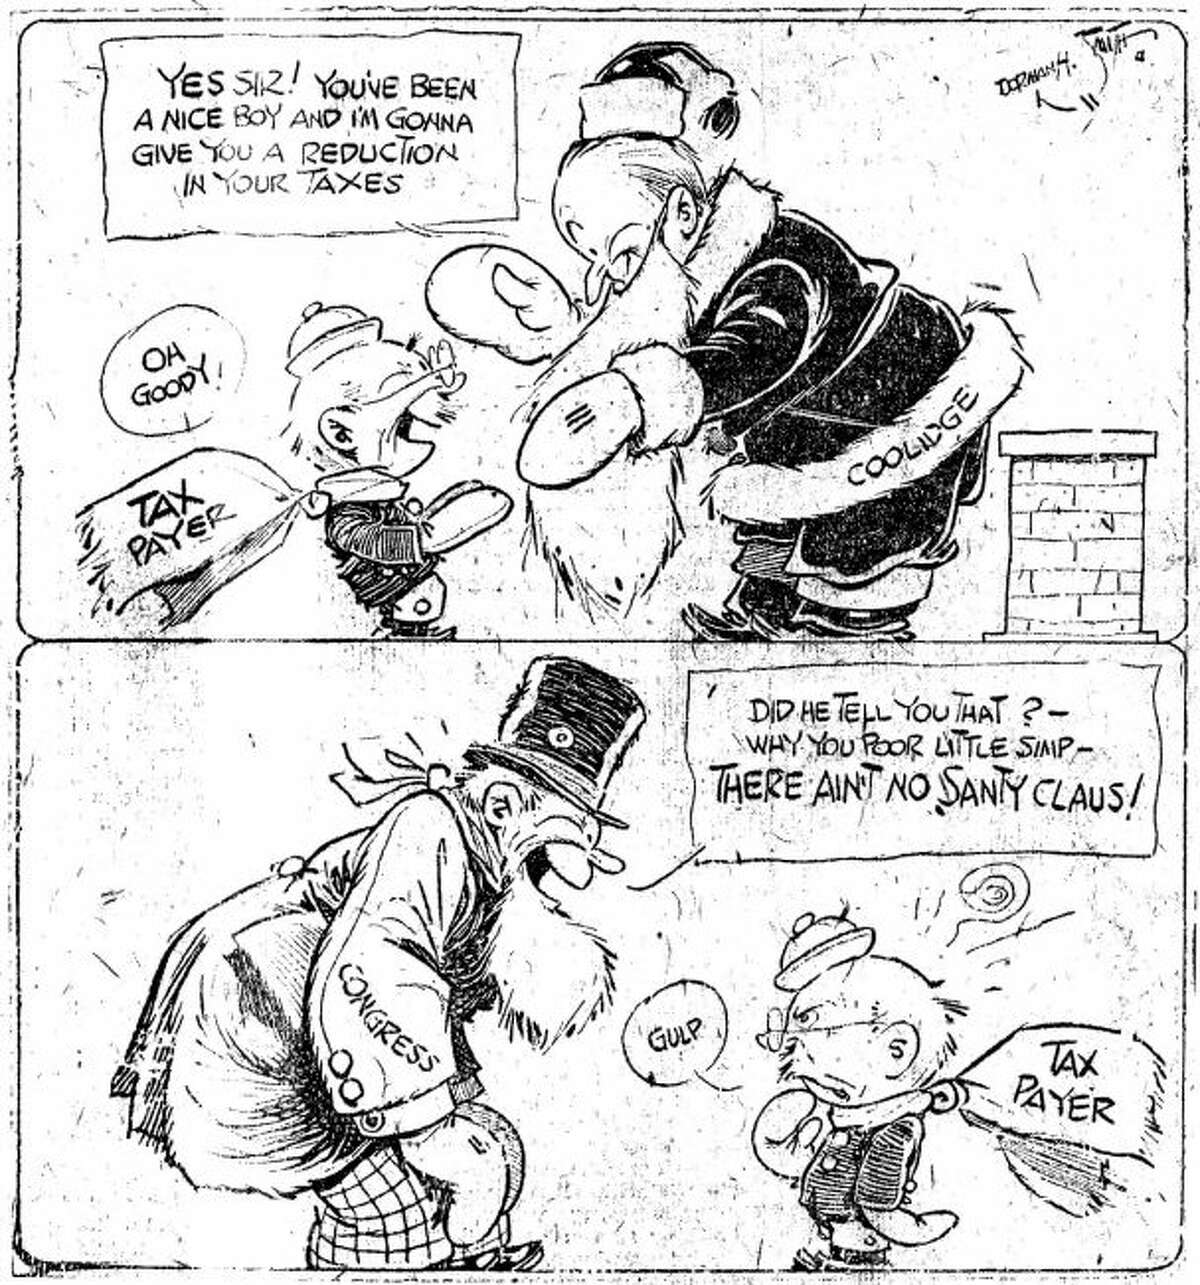 This cartoon ran in the Dec. 21 edition of the Manistee News Advocate about President Calvin Coolidge and Congress over taxes.